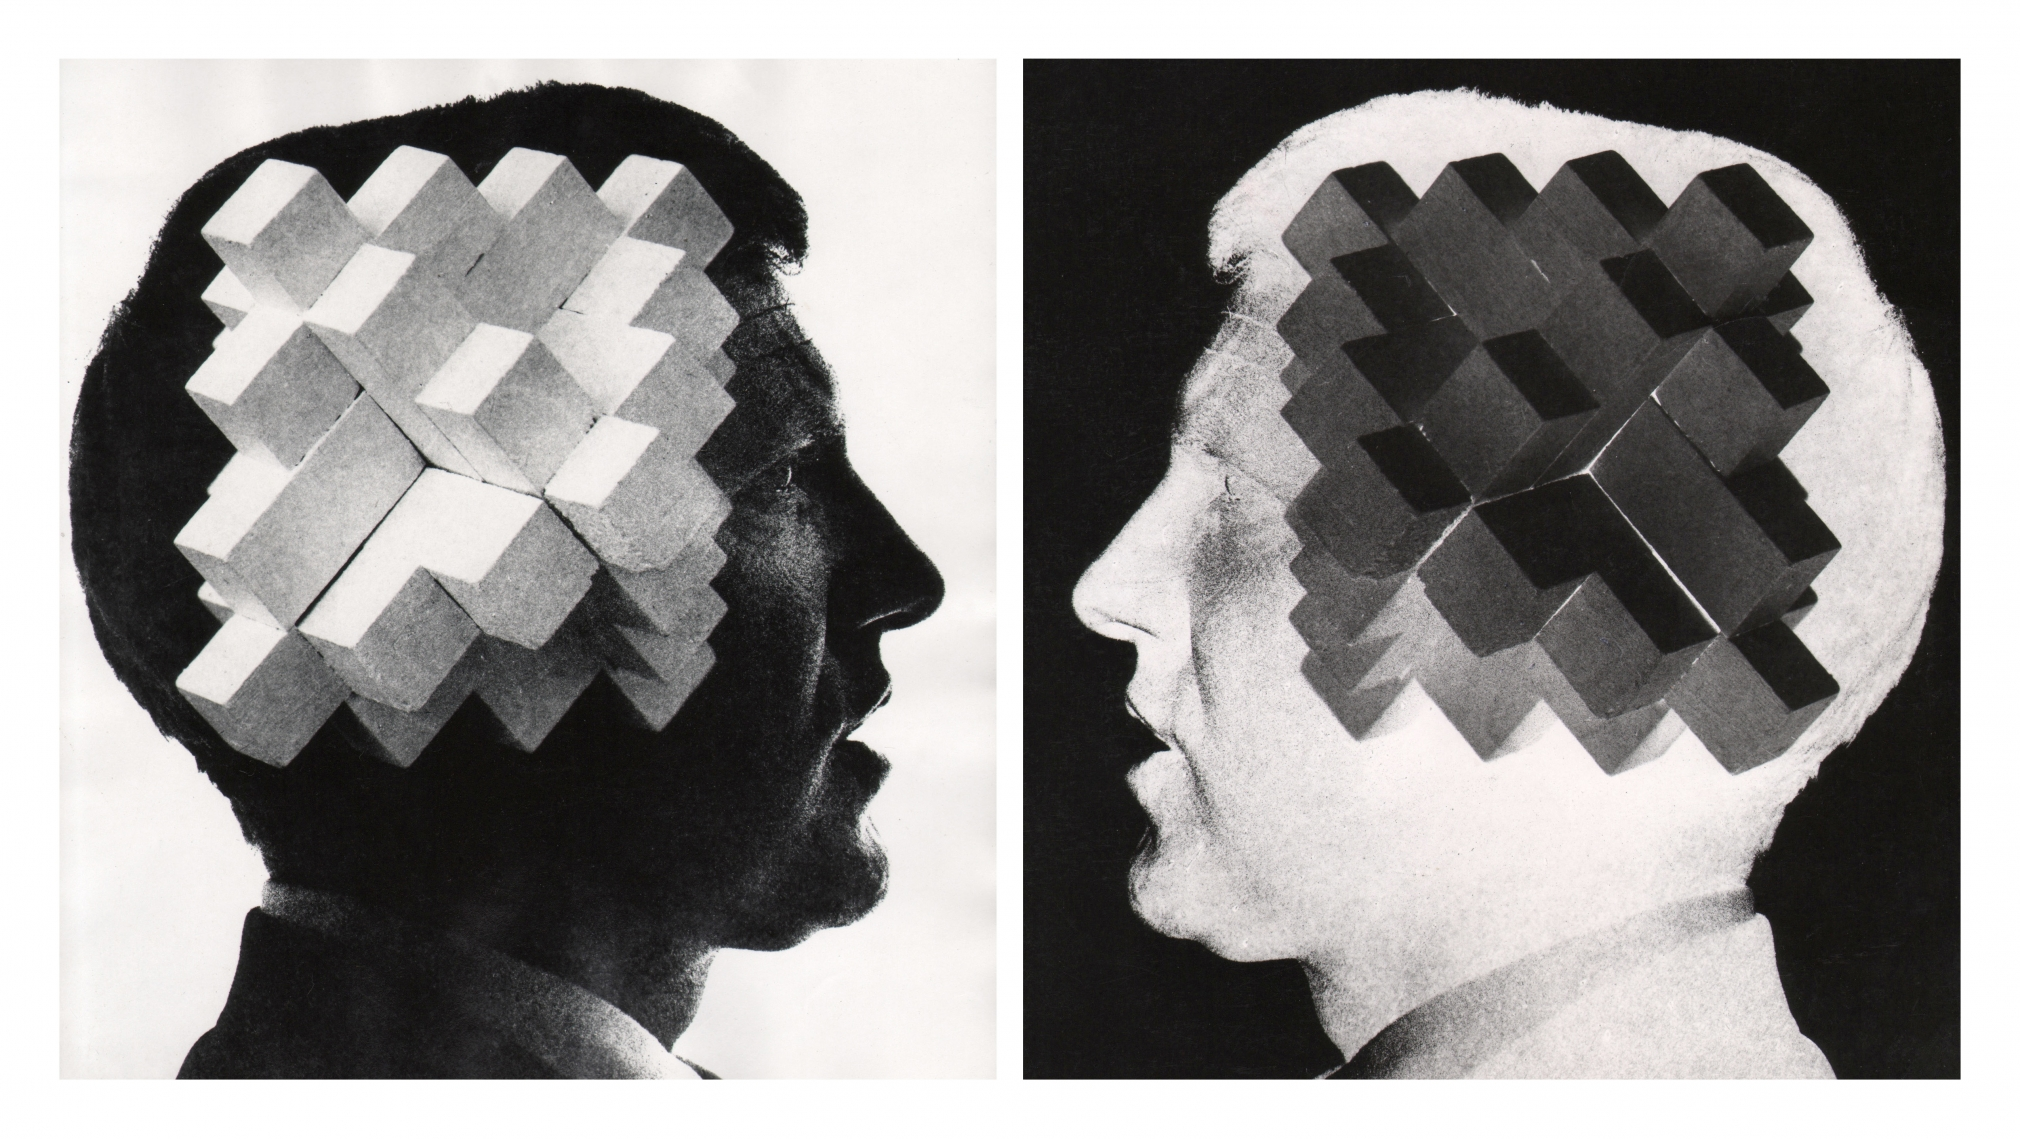 11. David Attie, Untitled, n.d. Two composite prints: one positive and one inverted negative of the same image. Side-profile portrait of a man's head with an abstract geometric sculpture superimposed.